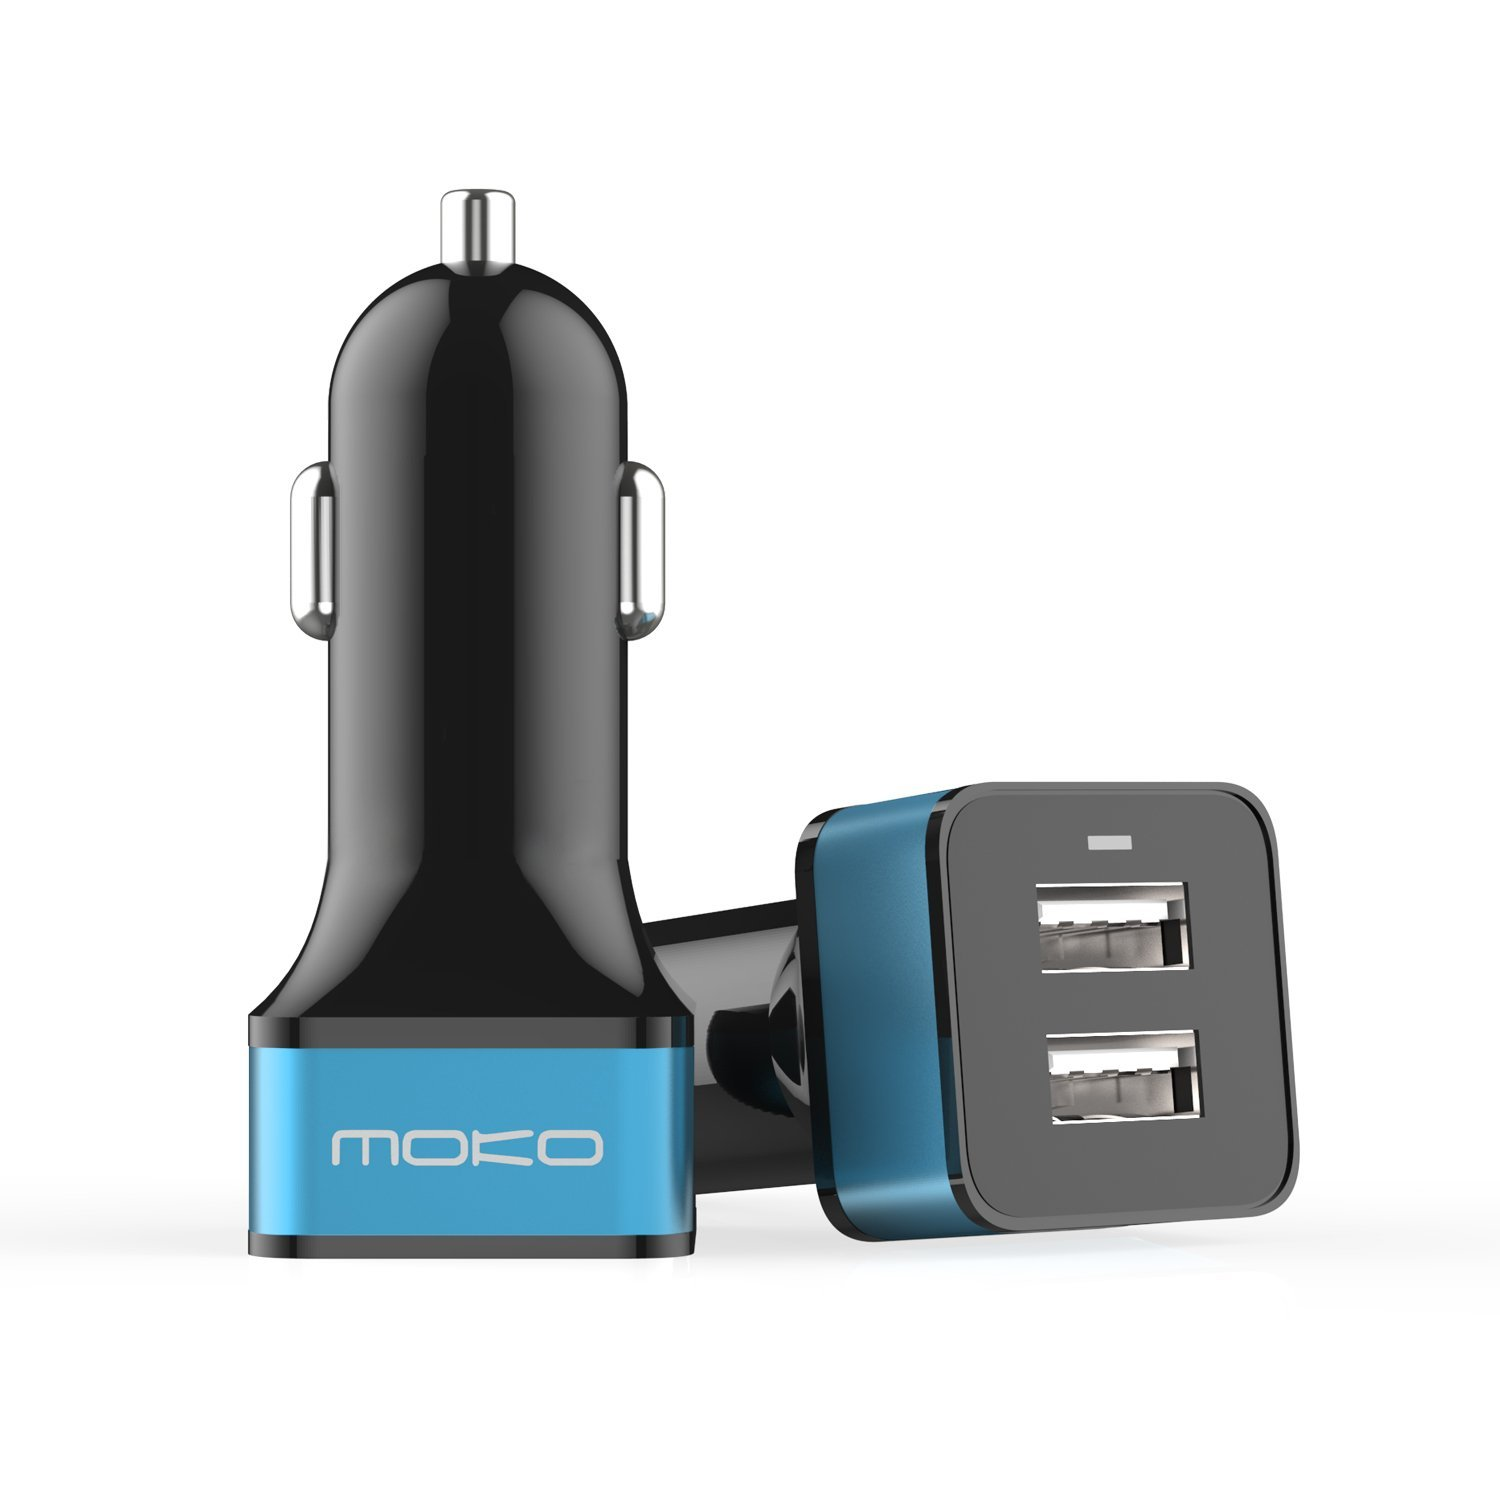 """MoKo 2-Port USB Car Charger, 24W / 4.8A with Smart Charging Technology for iPhone X / 8 / 8 Plus / 7 / 7 Plus / 6s / 6s Plus, iPad Pro 9.7""""/ Pro 12.9""""/ Mini 4 / Air 2, and More Devices, BLACK & BLUE"""